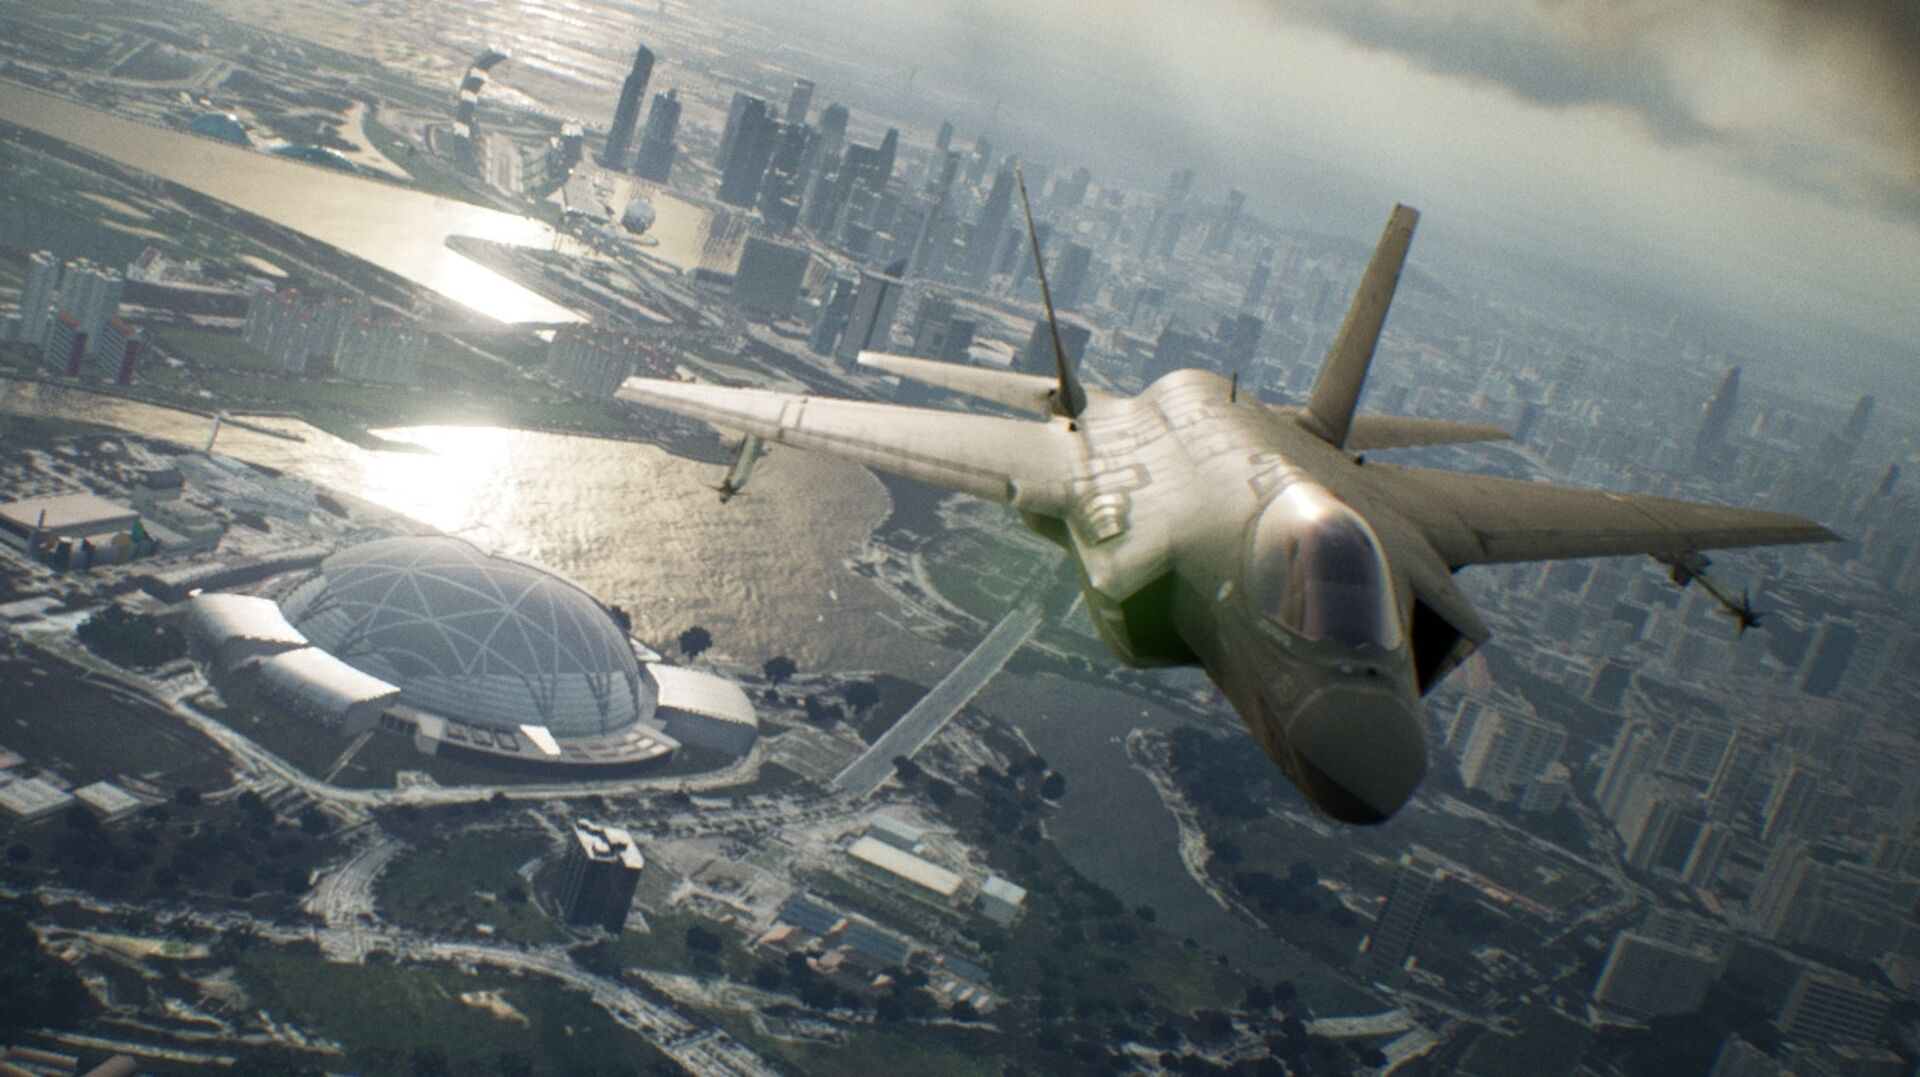 Ace Combat 7 A Classic Series Evolves With Stunning Visuals Eurogamer Net